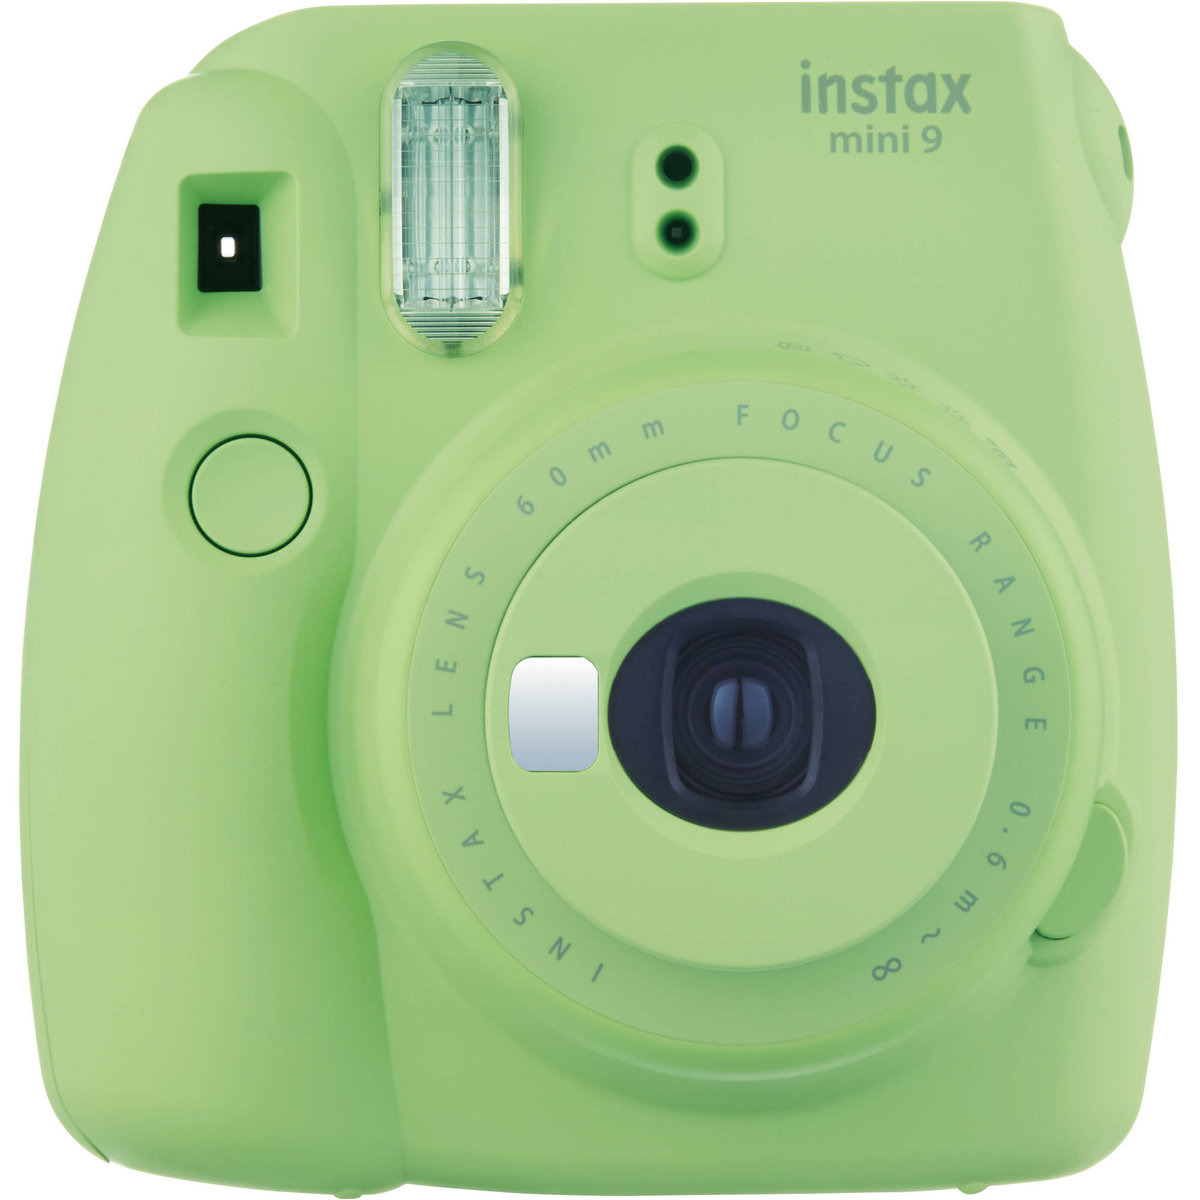 Instax mini9 Lime Green (Parallel import)